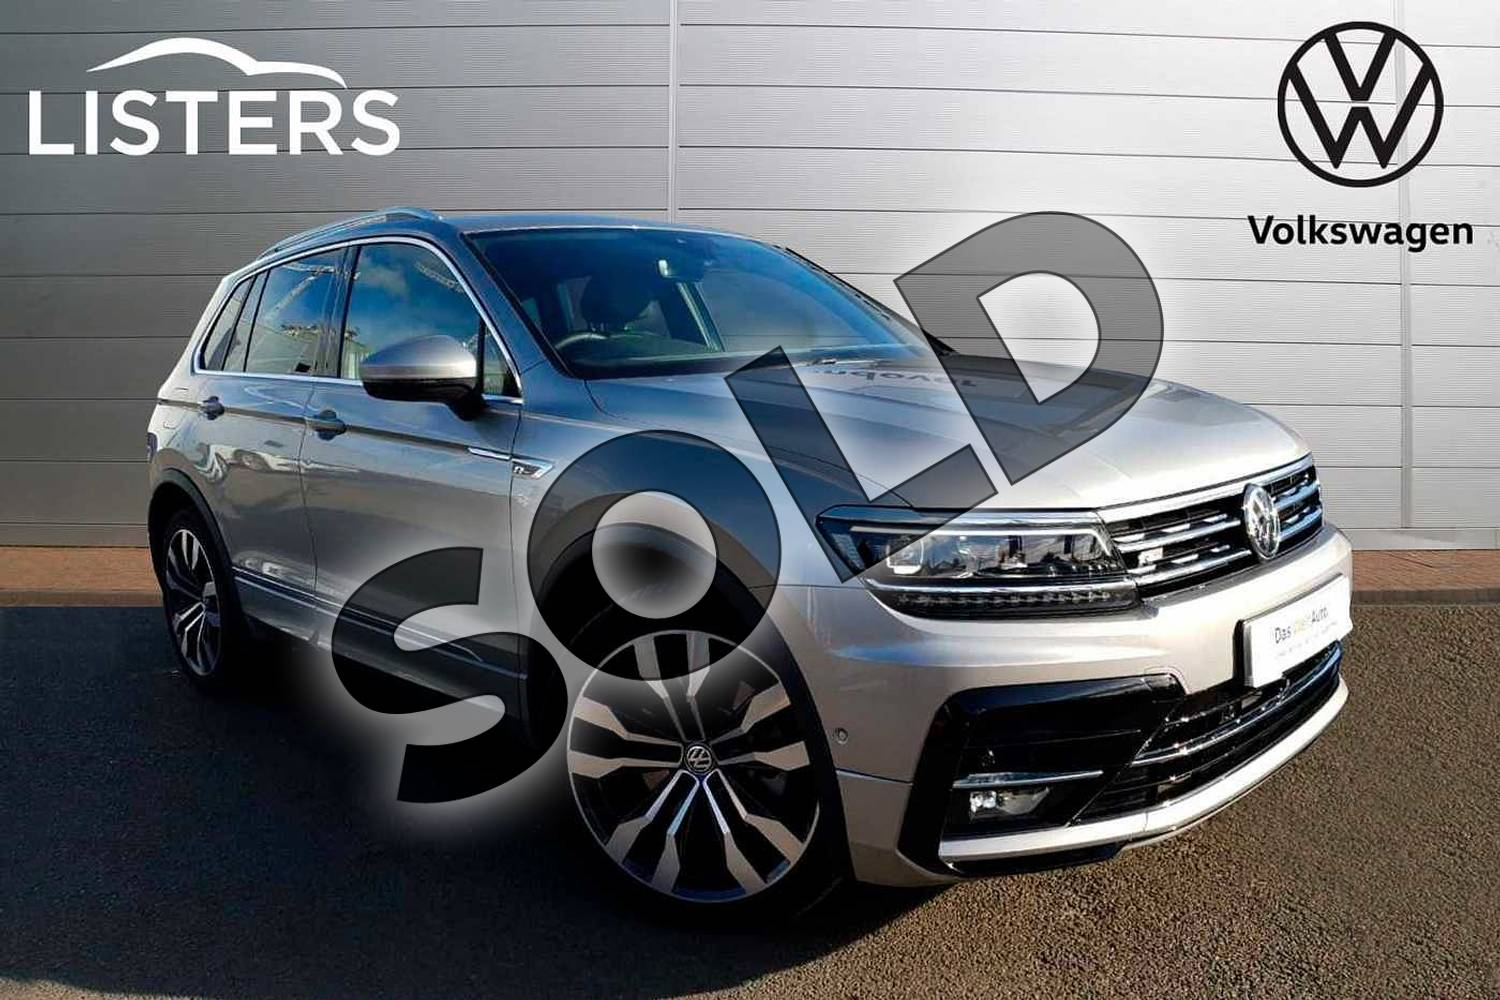 2019 Volkswagen Tiguan Estate 2.0 TSI 230 4Motion R Line Tech 5dr DSG in Tungsten Silver at Listers Volkswagen Coventry